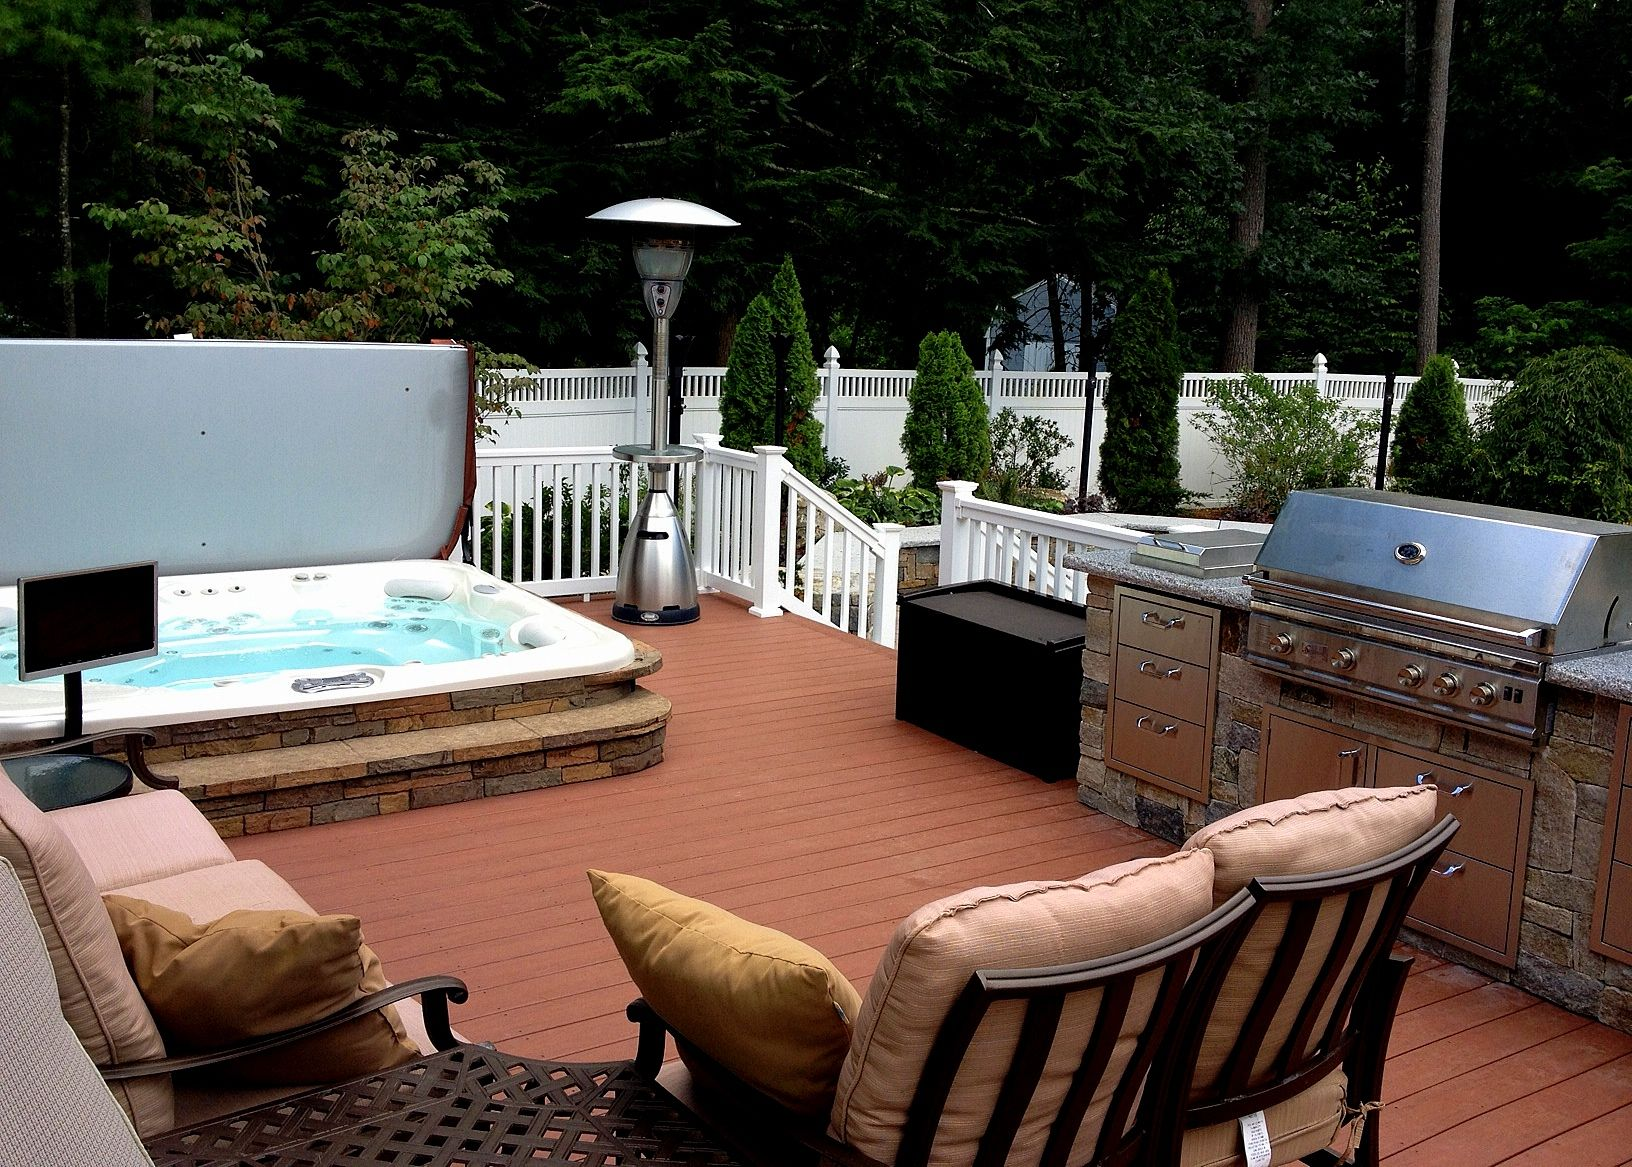 Hotspring Spa With Wireless Tv And Entertainment More From Oasis Hot Tub 7 Sauna Nashua Nh At Www Hotspas